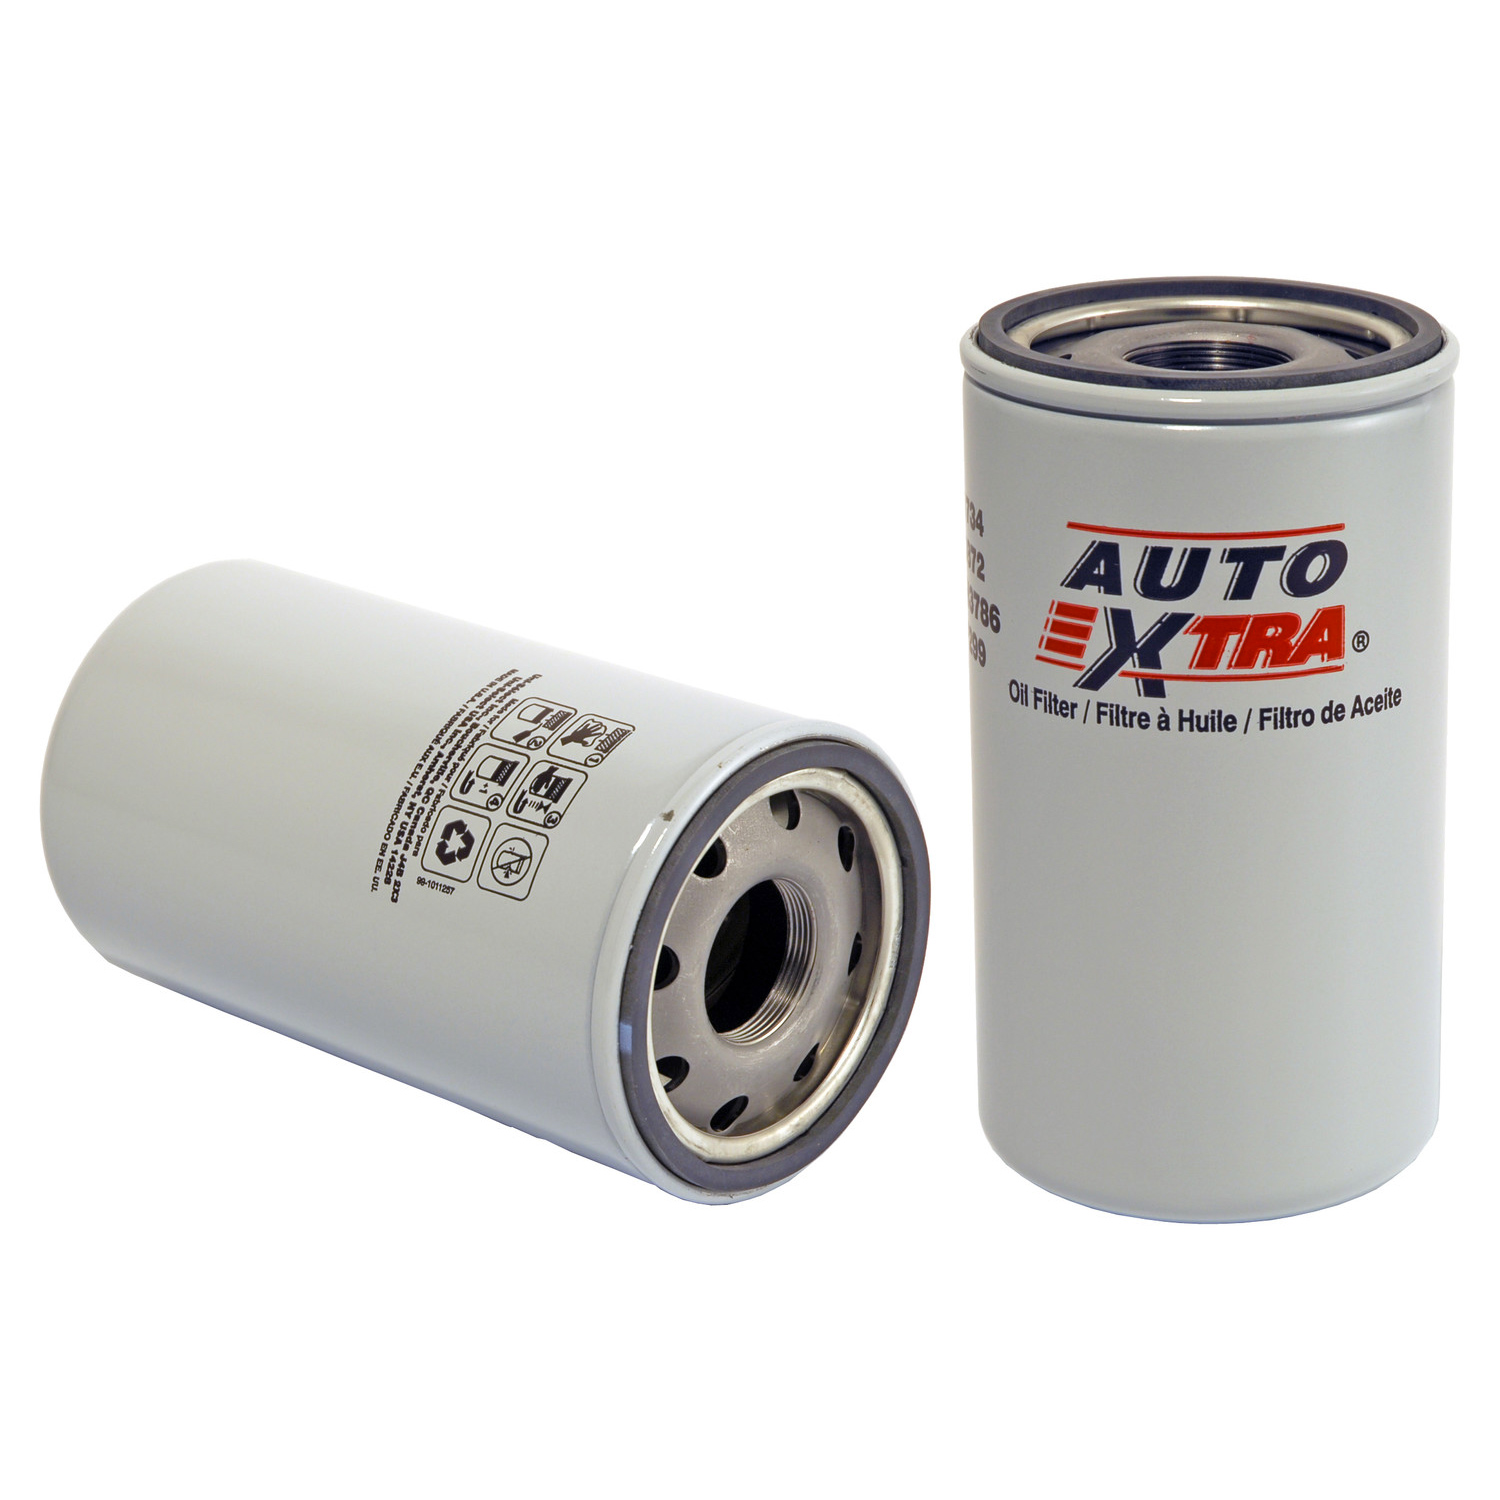 Auto Extra Oil Filter